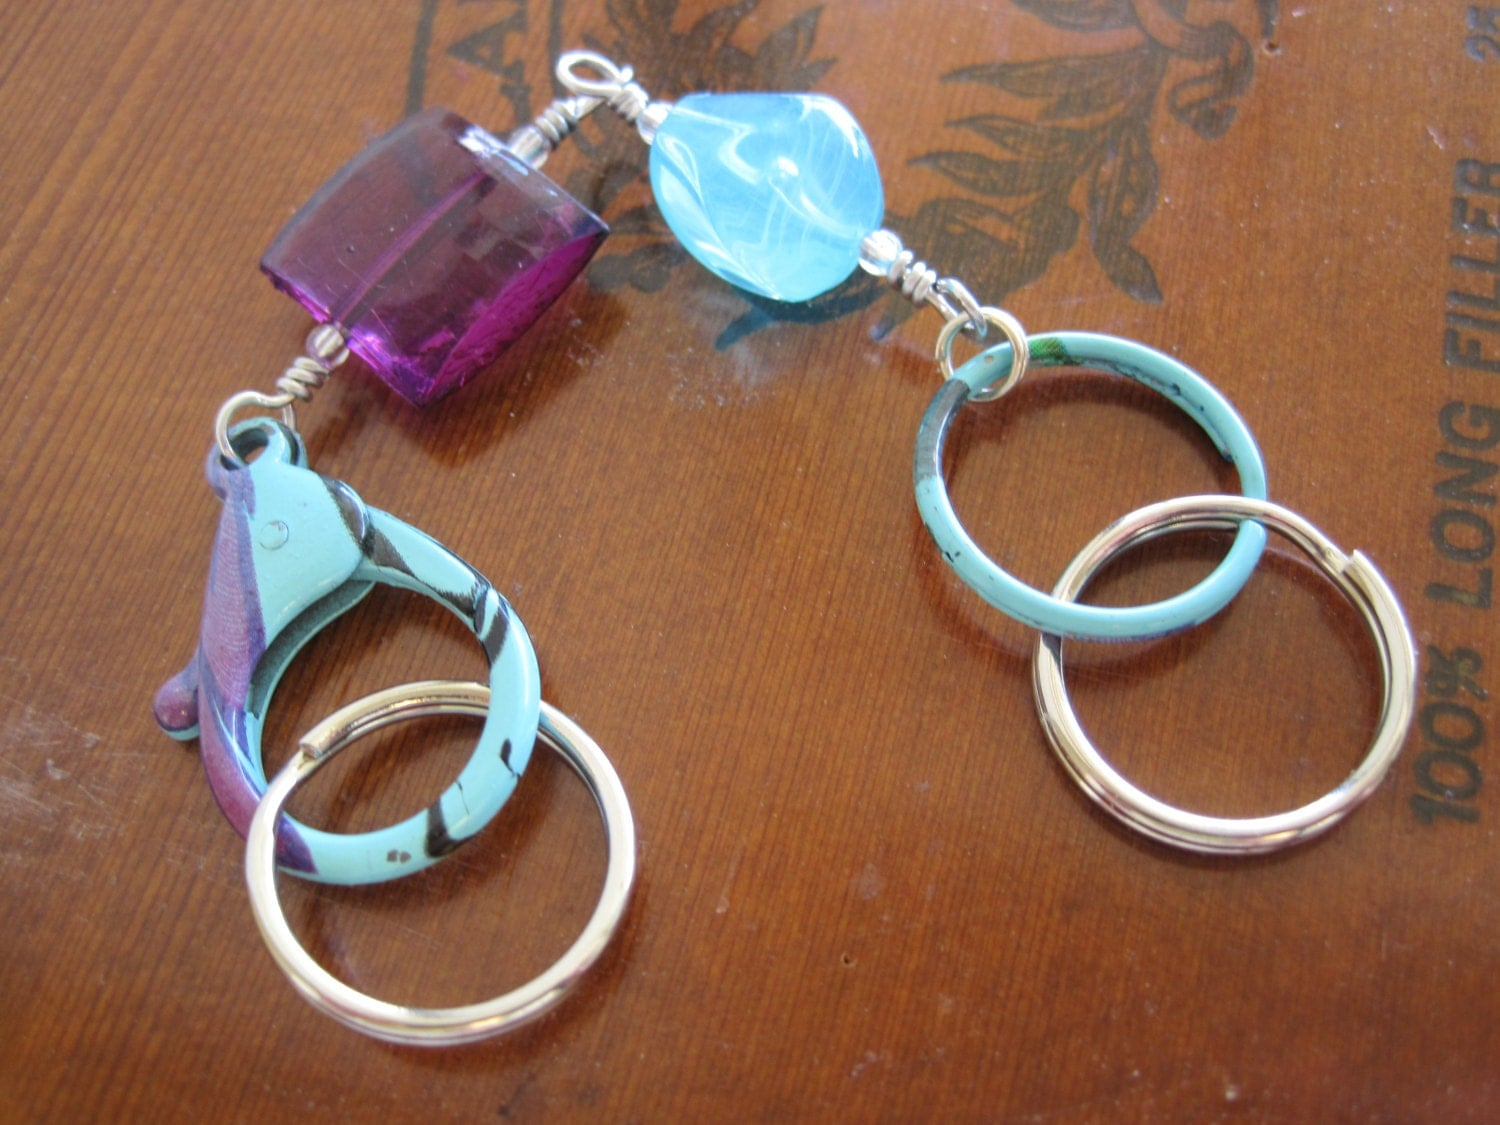 Key Chain Purple And Turquoise Beads With Colorful Carabiner